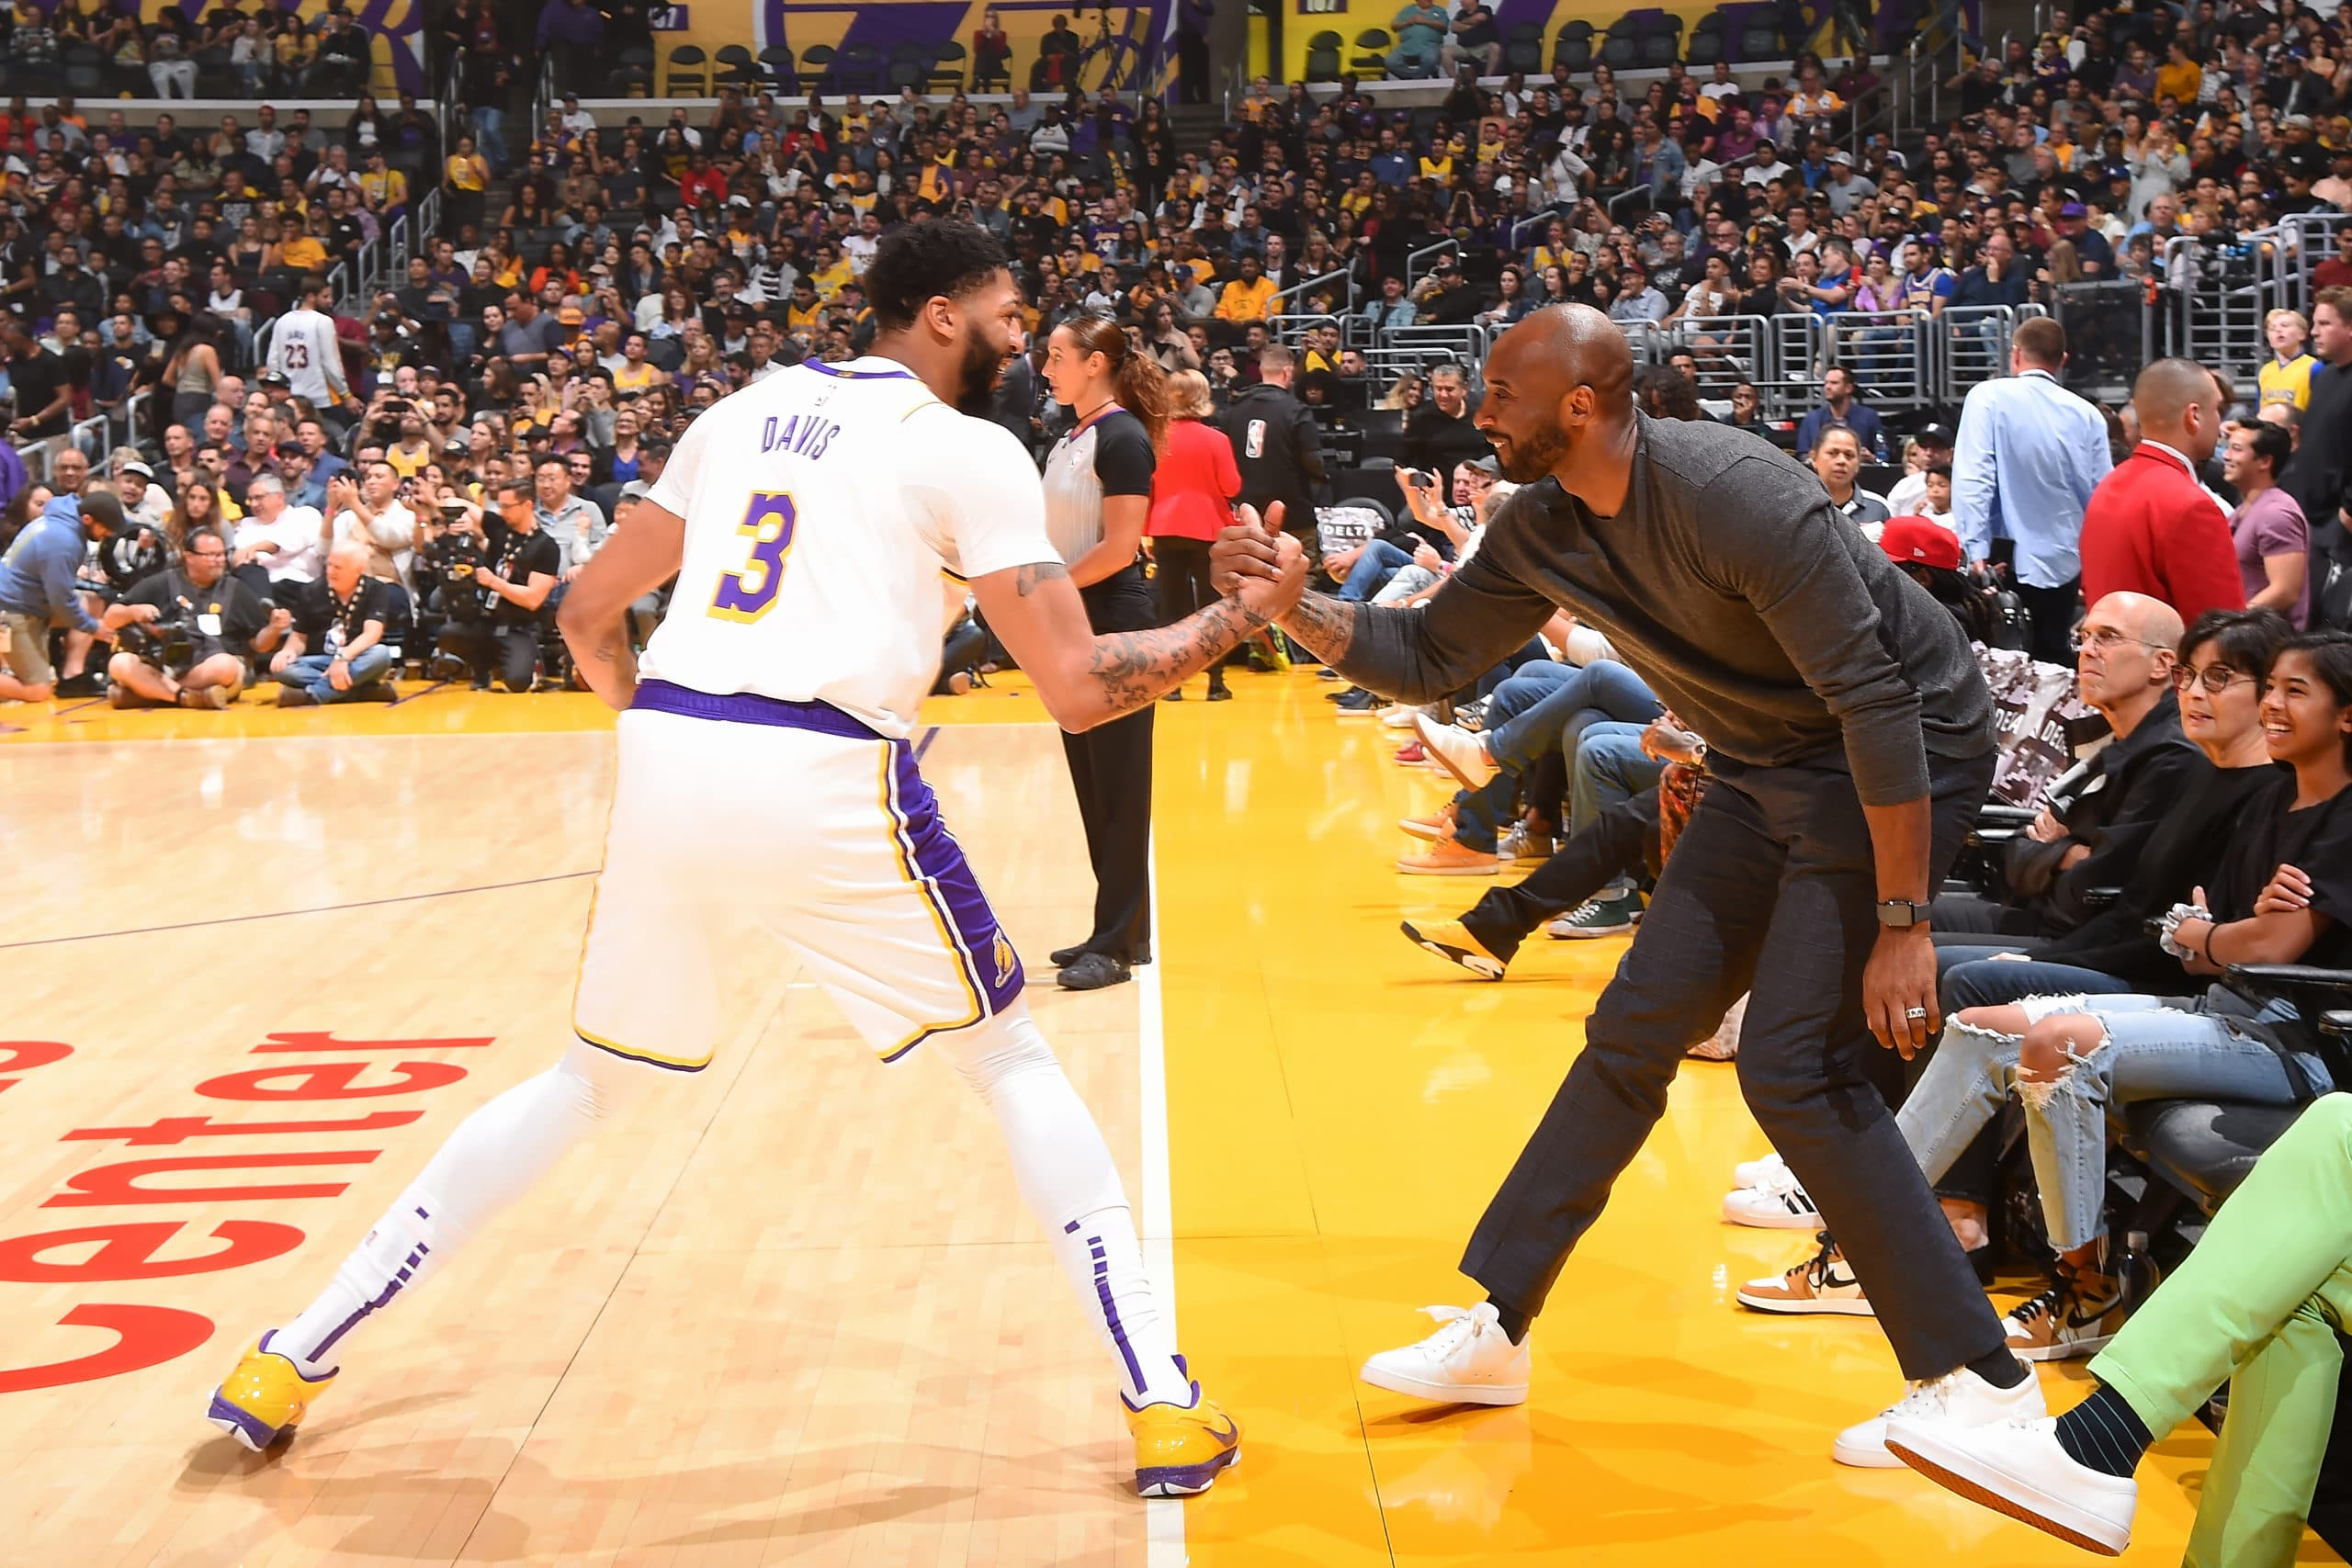 anthony-davis-says-it-wouldve-been-luxuriate-in-a-dream-to-play-with-kobe-bryant-on-lakers.jpg